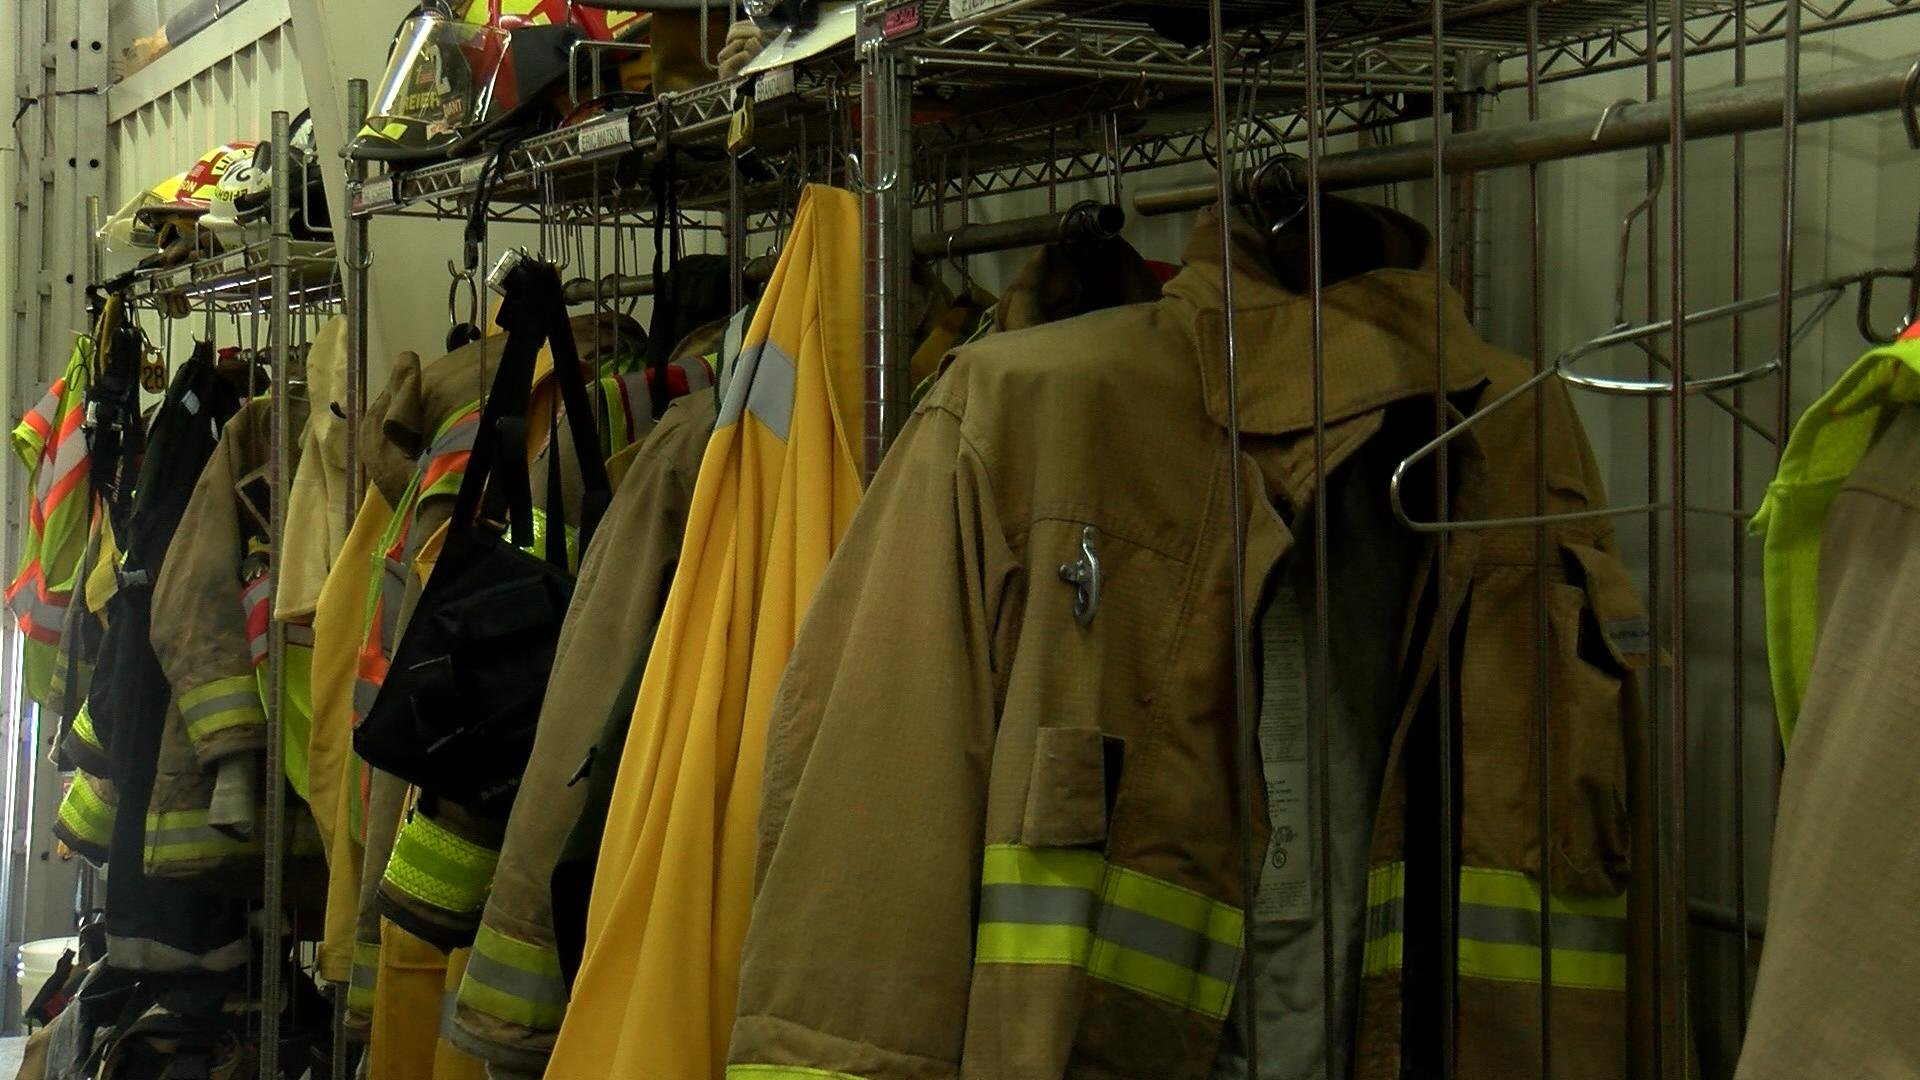 Fire protection gear hang on wall.